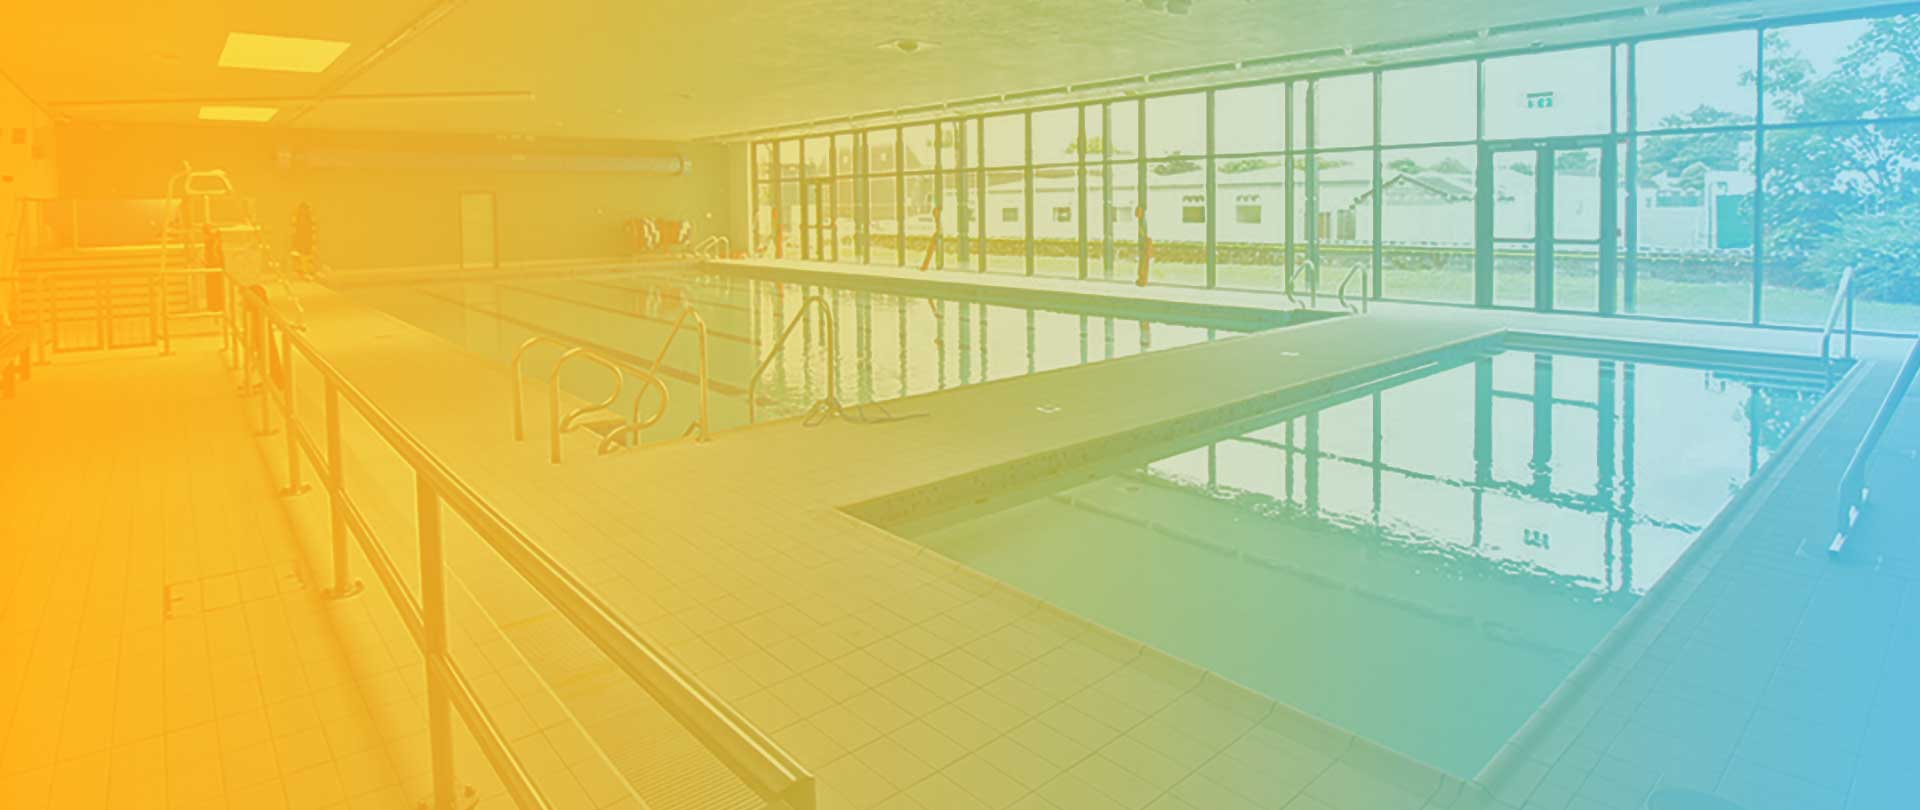 Swimming pool dublin 7 navan road aura leisure centre - Hotels in dundalk with swimming pool ...